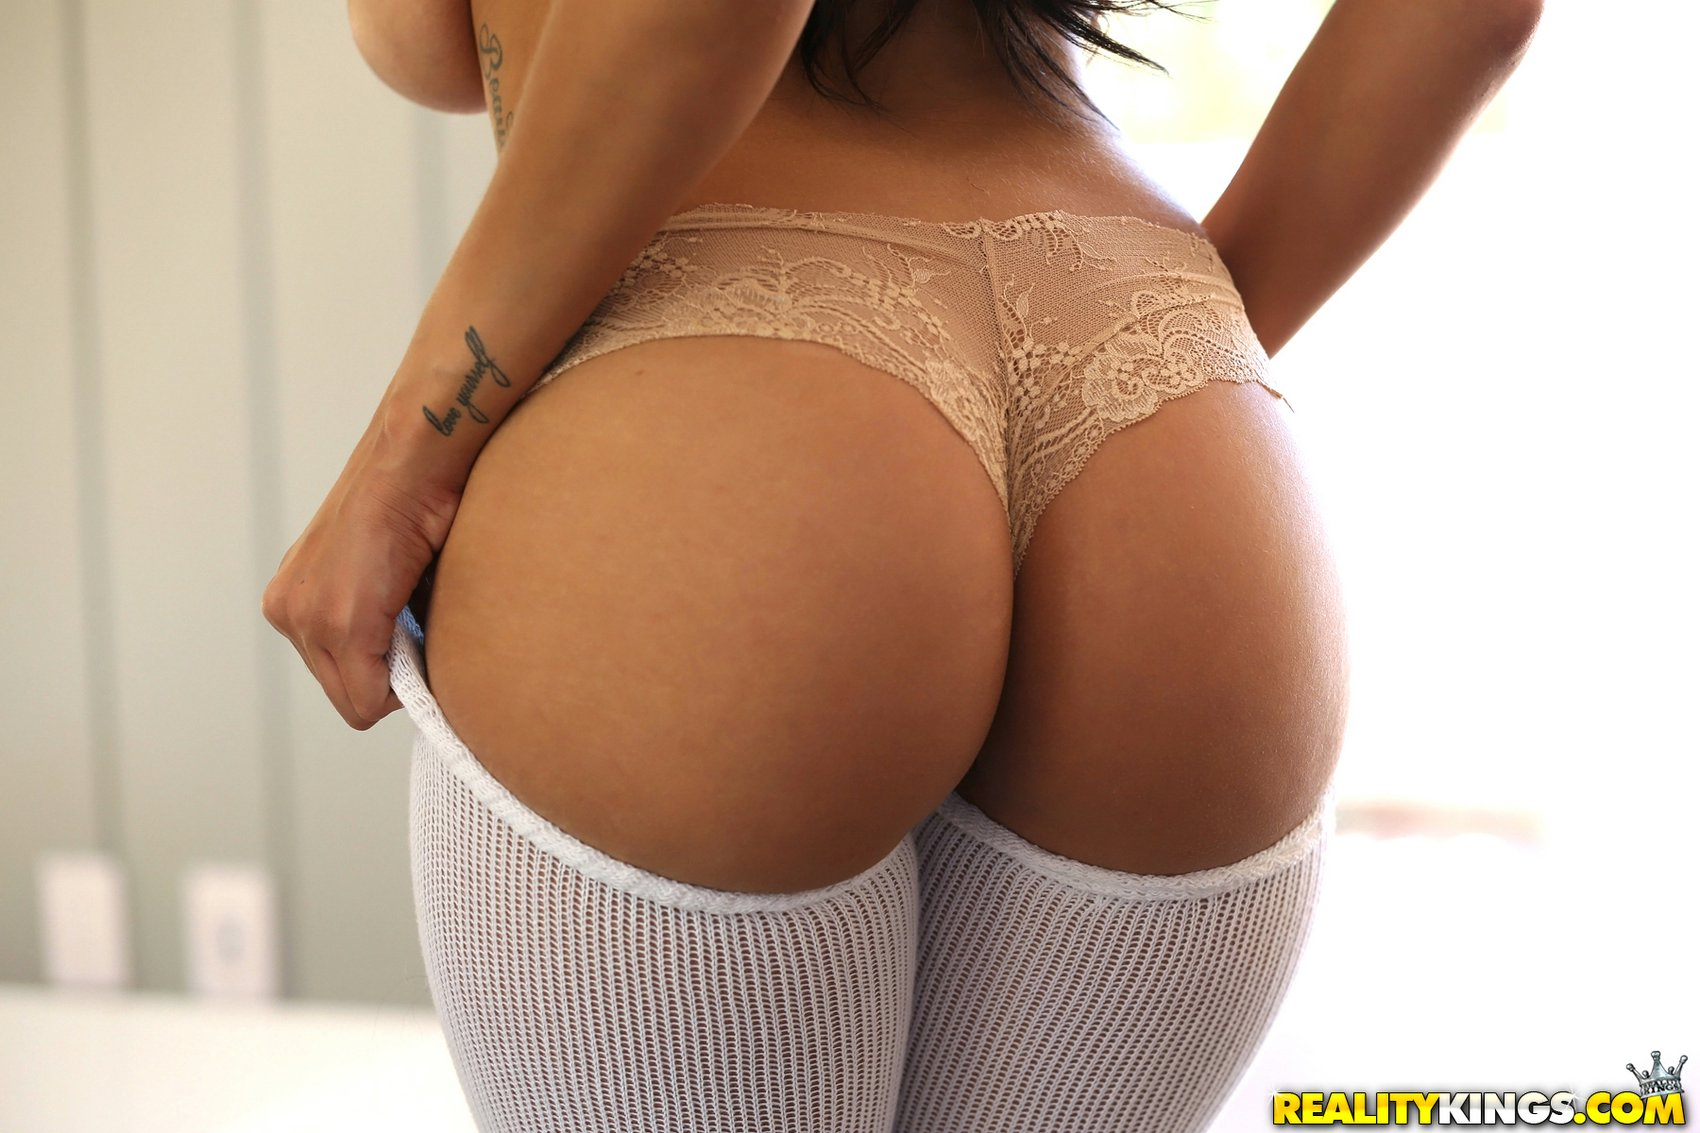 cassidy banks in white high socks shows her big boobs and